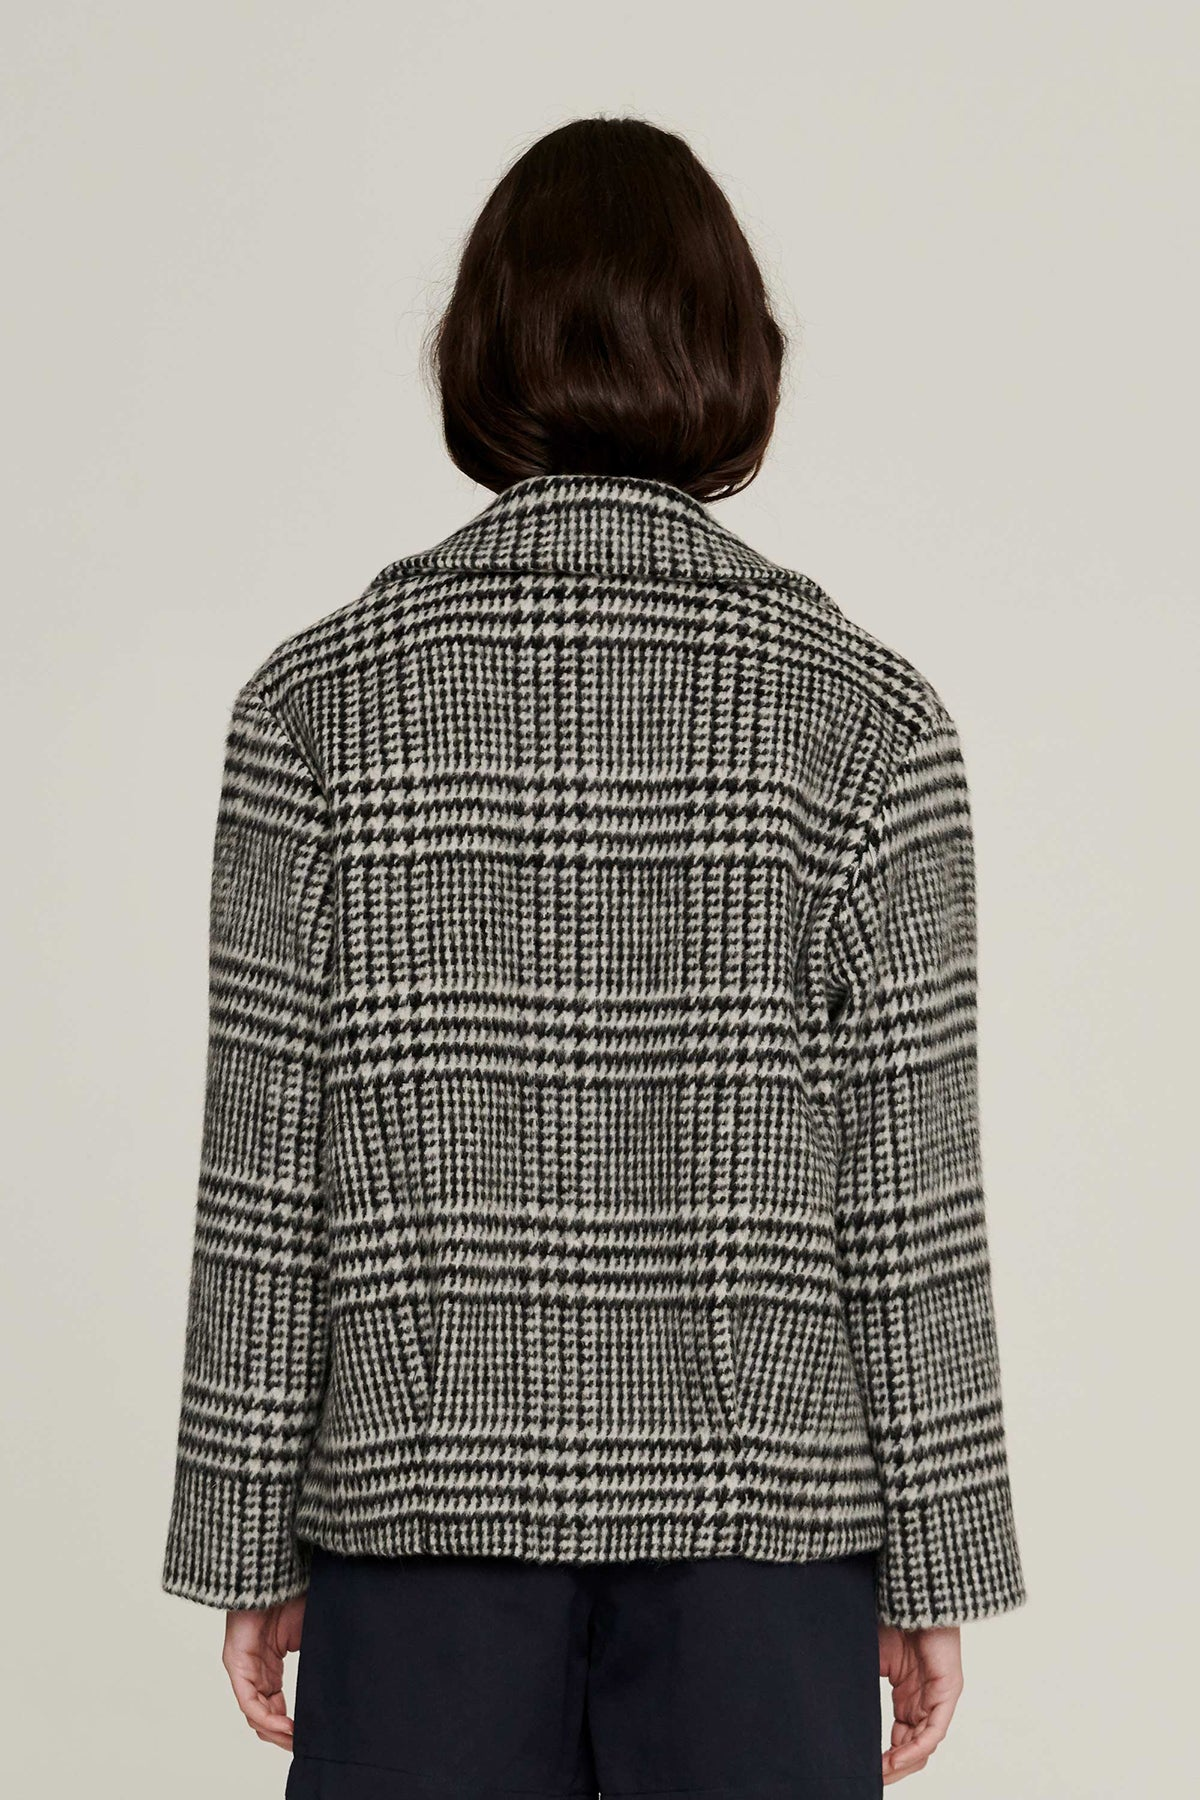 Permanent Vacation Houndstooth Jacket // Mono Check